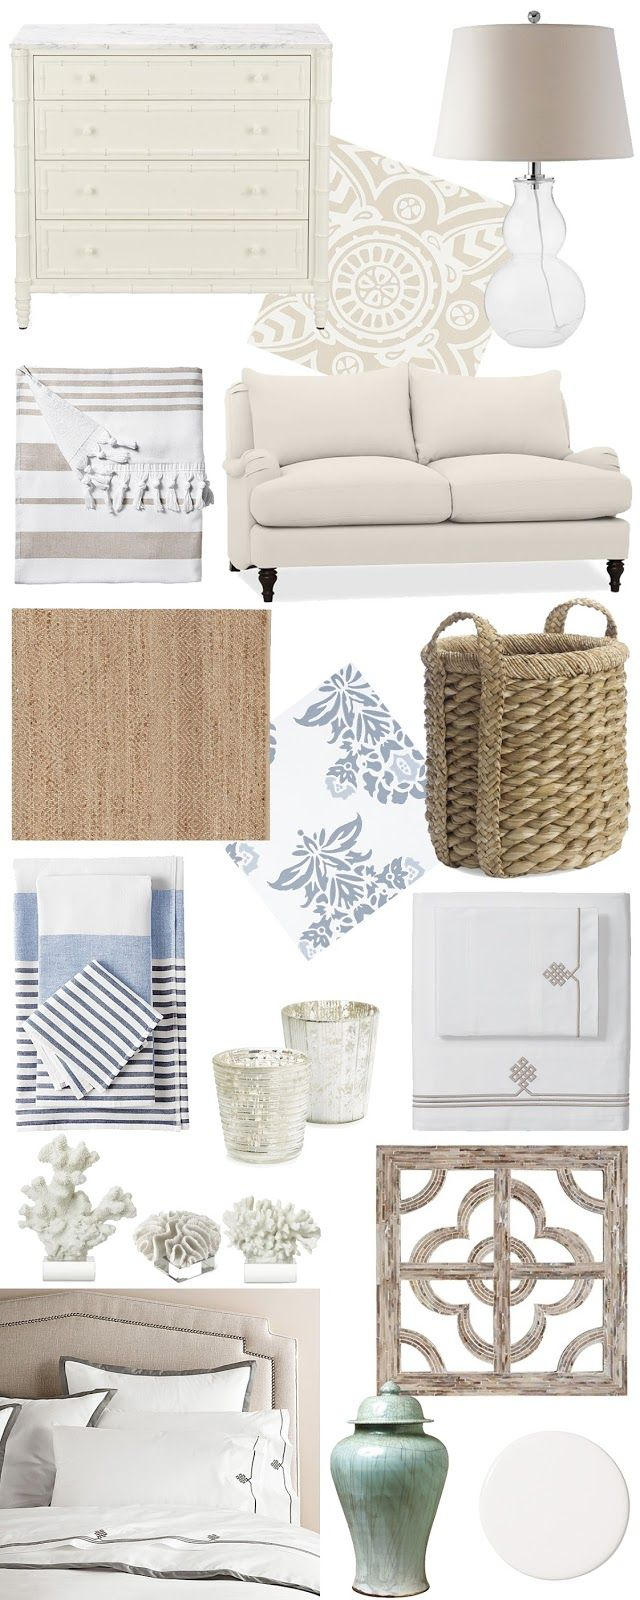 Coastal Decor White Wicker Simplistic Furniture Home Decor